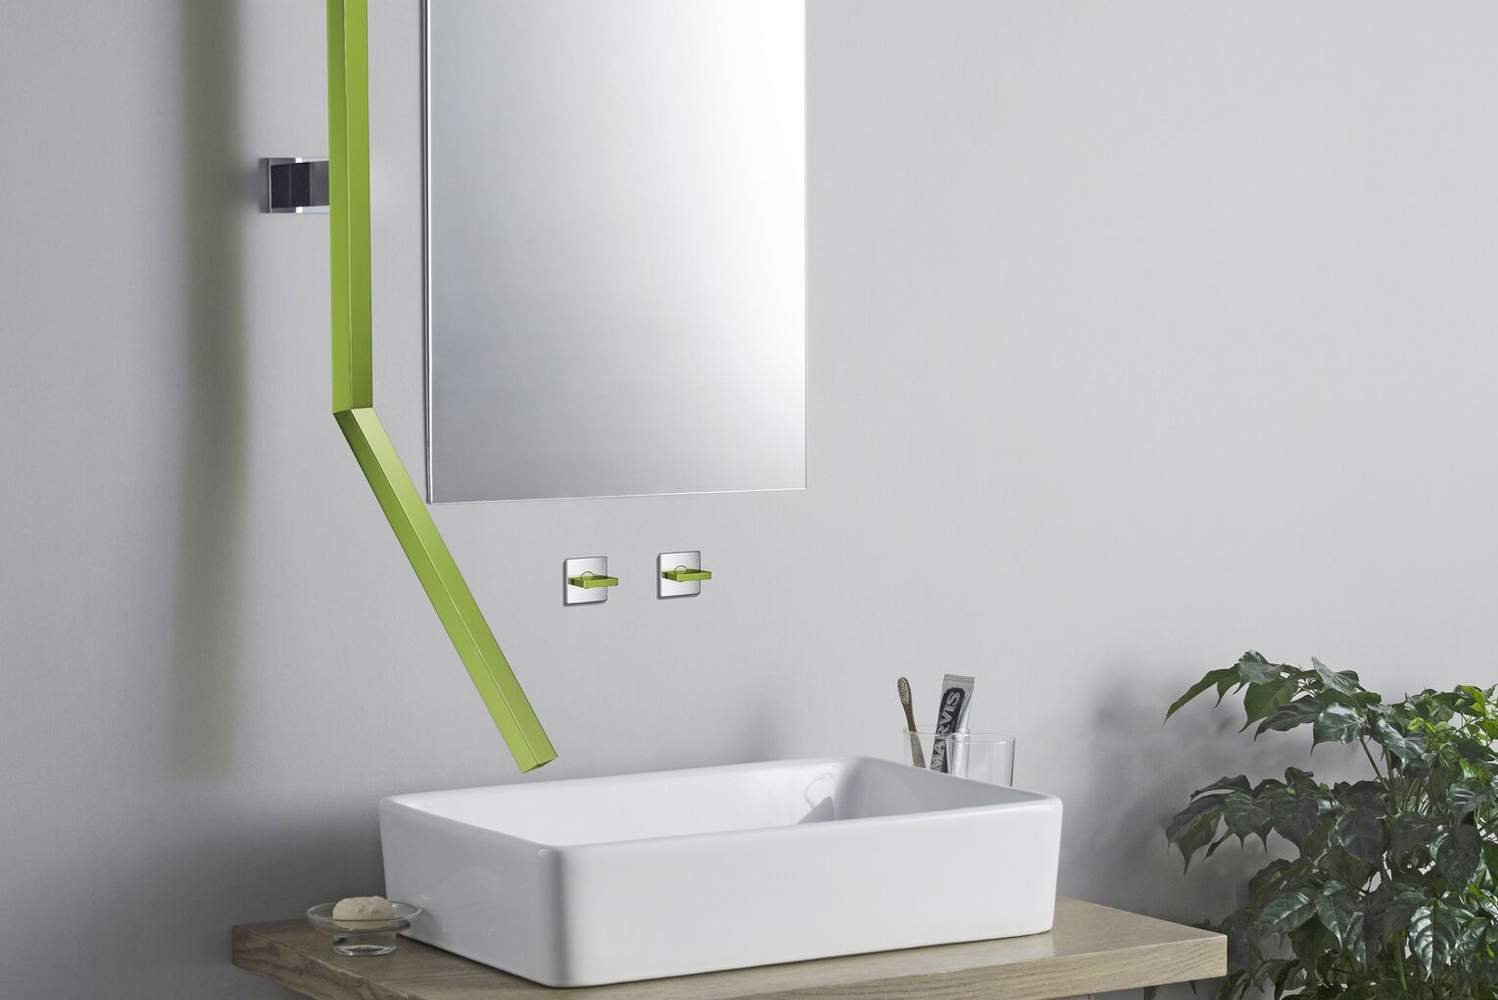 This faucet frames the side of the mirror before angling away from the wall to create a waterfall effect.